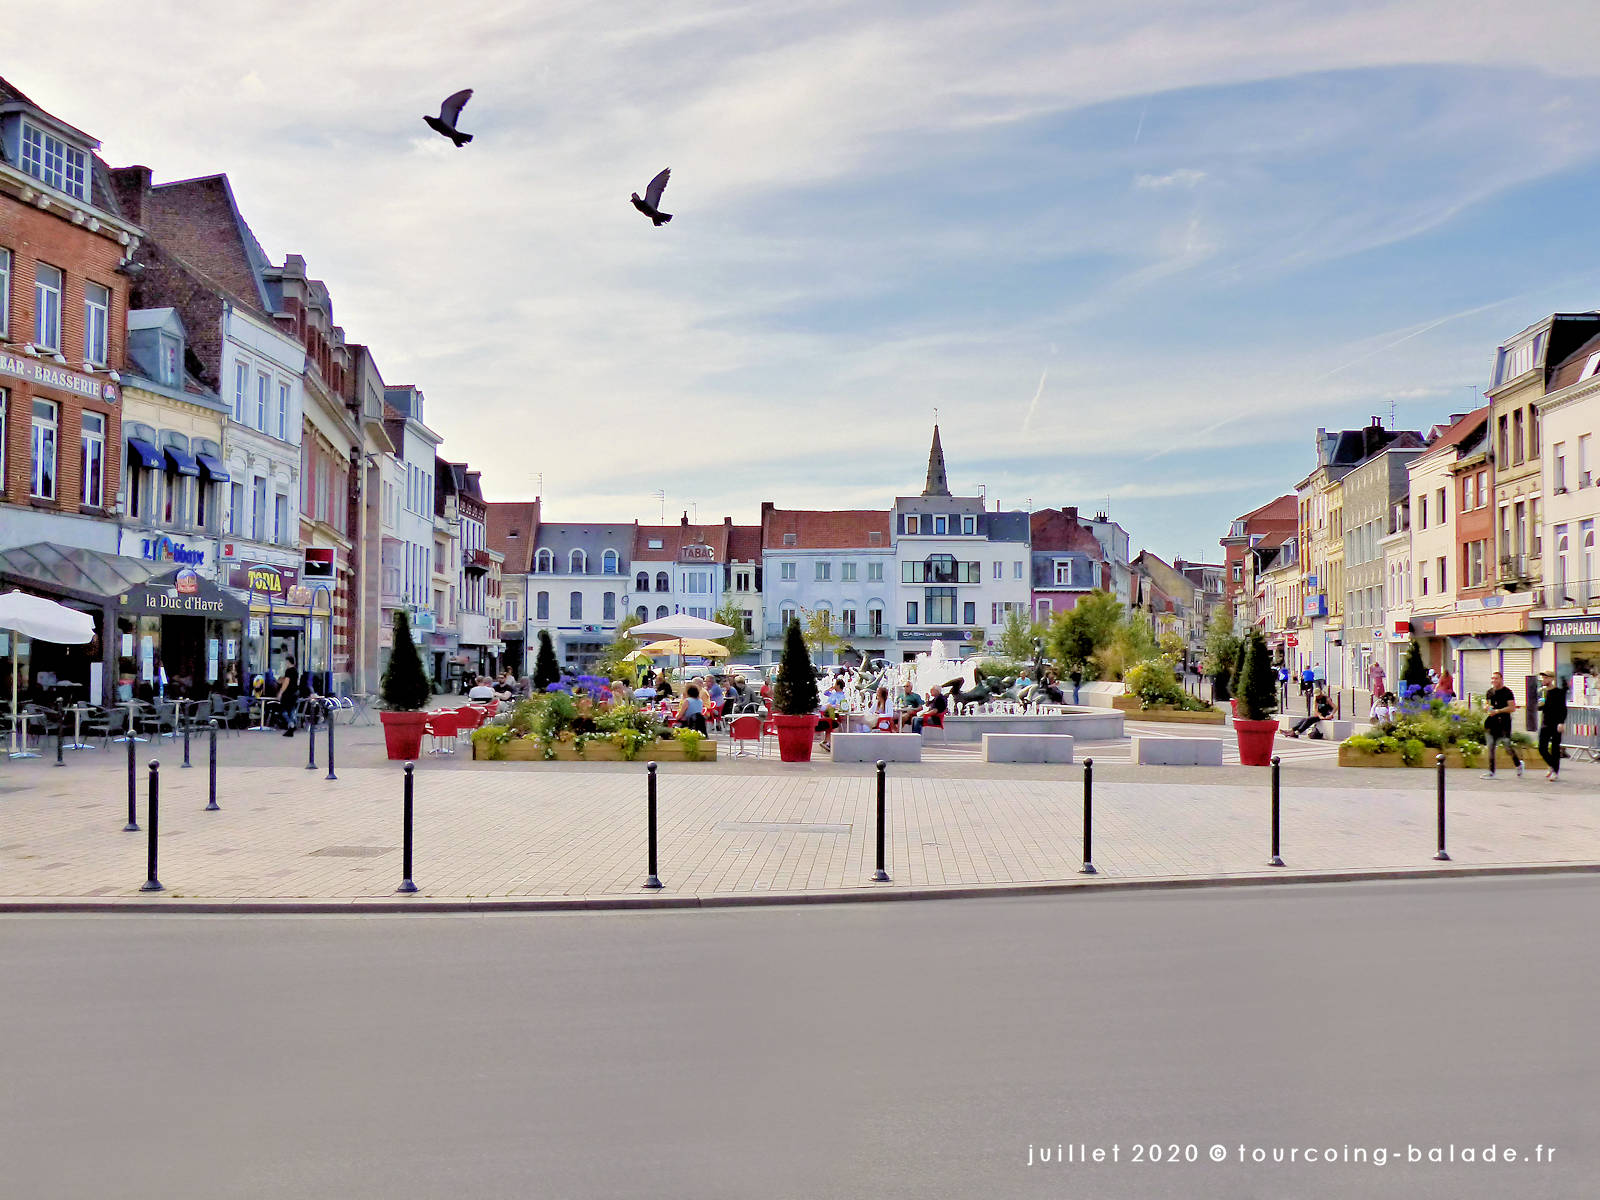 Grand Place, Tourcoing 2020